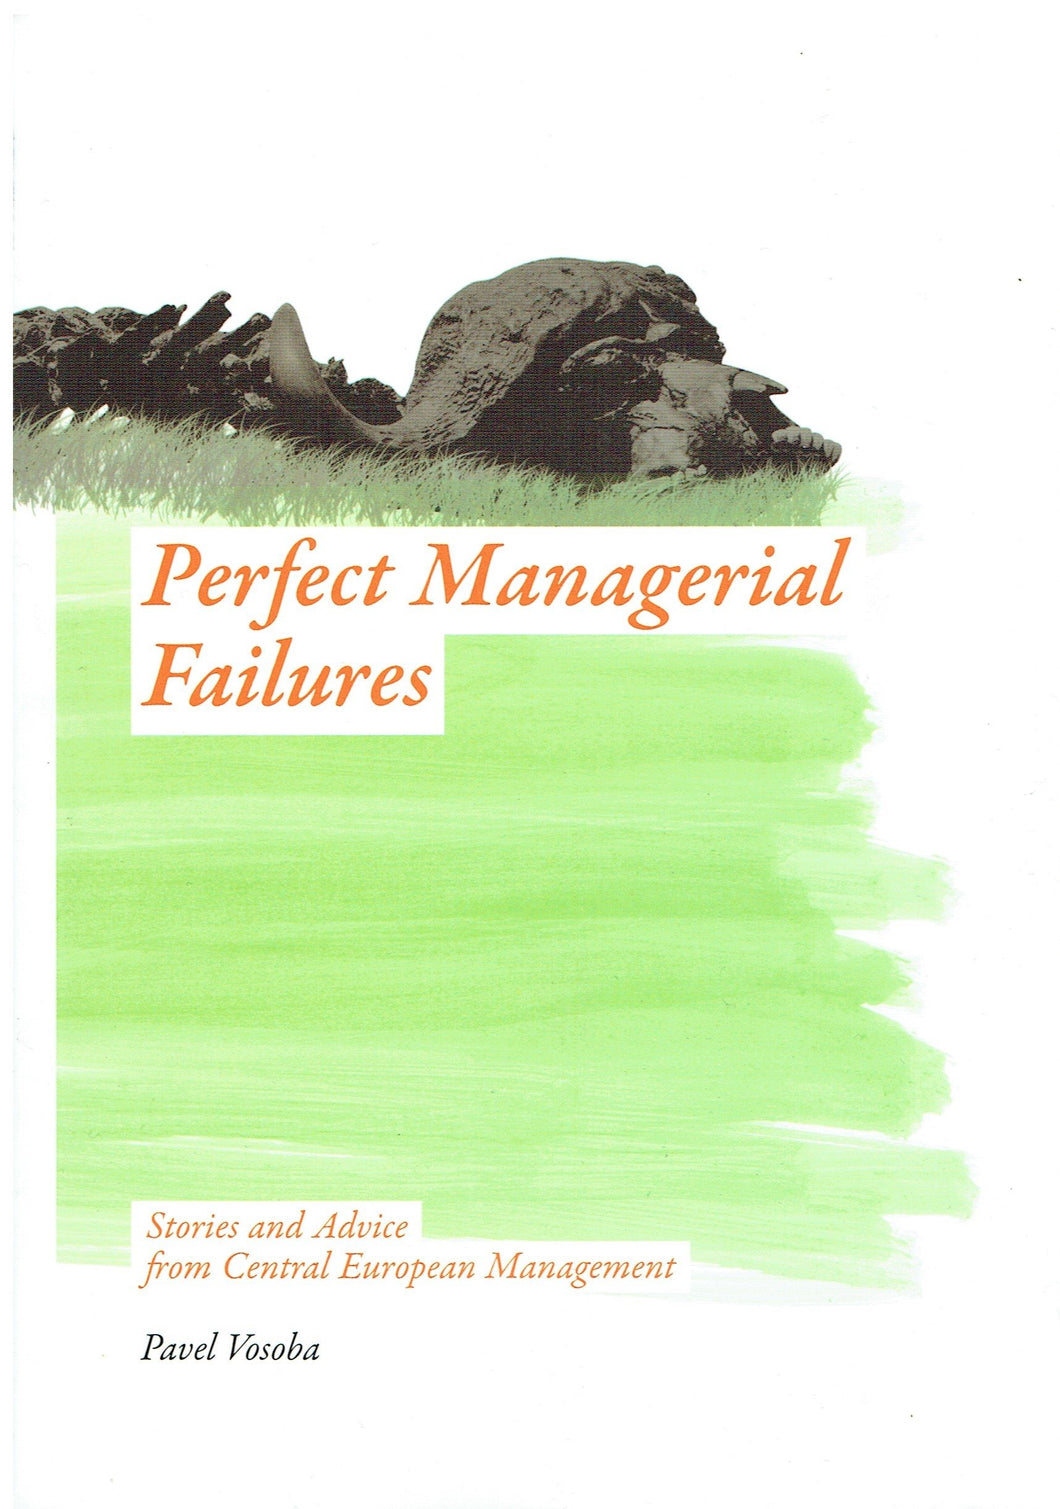 Perfect Managerial Failures: Stories and Advice from Central European Management